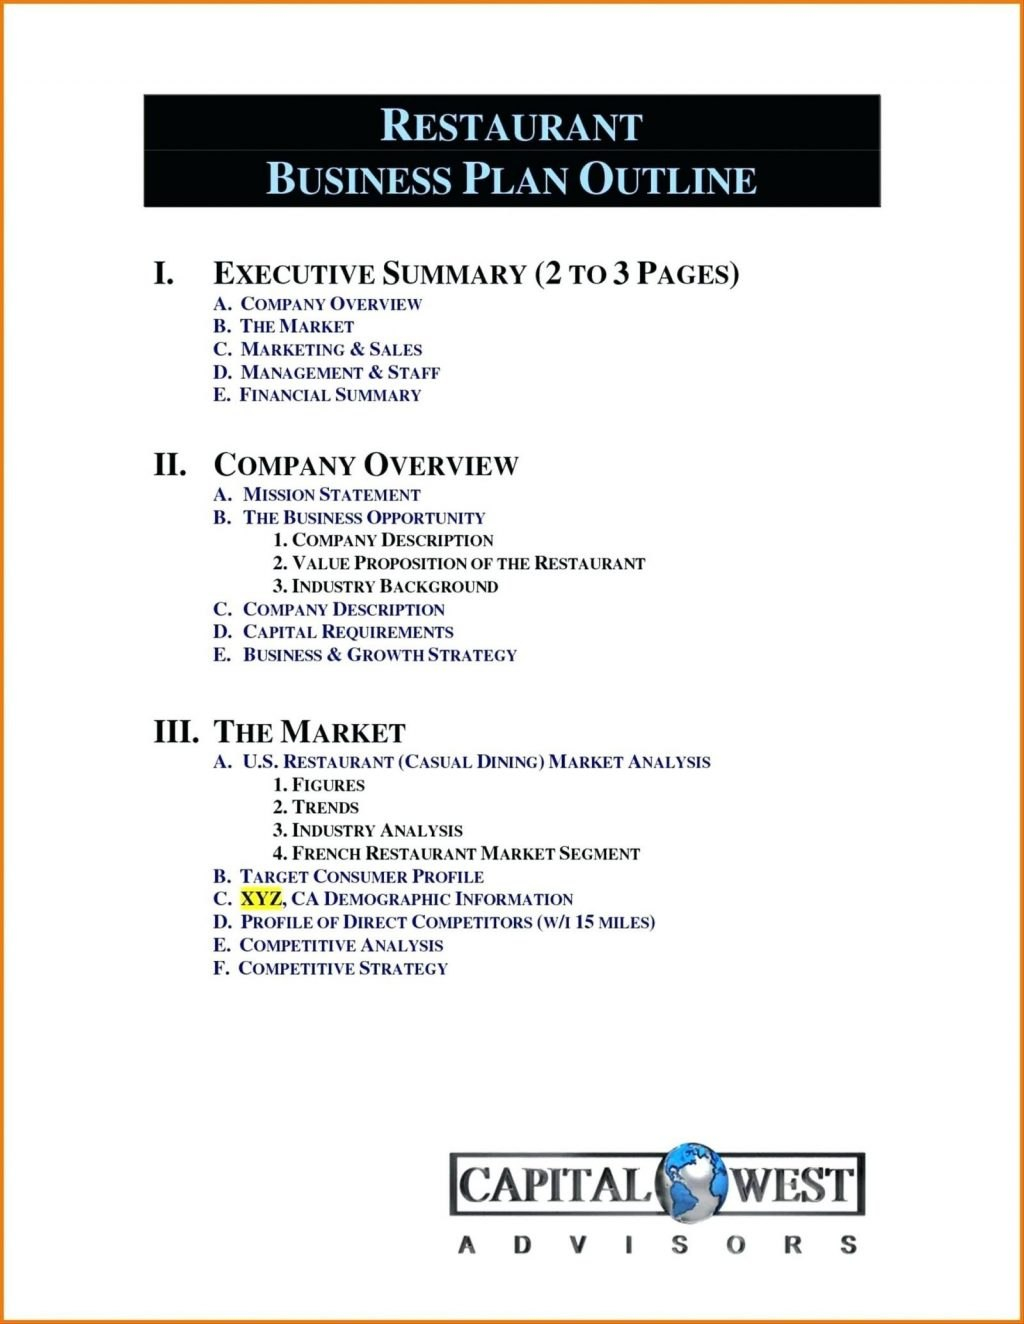 Company Profile Template For Small Business Inspirational Restaurant With Company Profile Template For Small Business